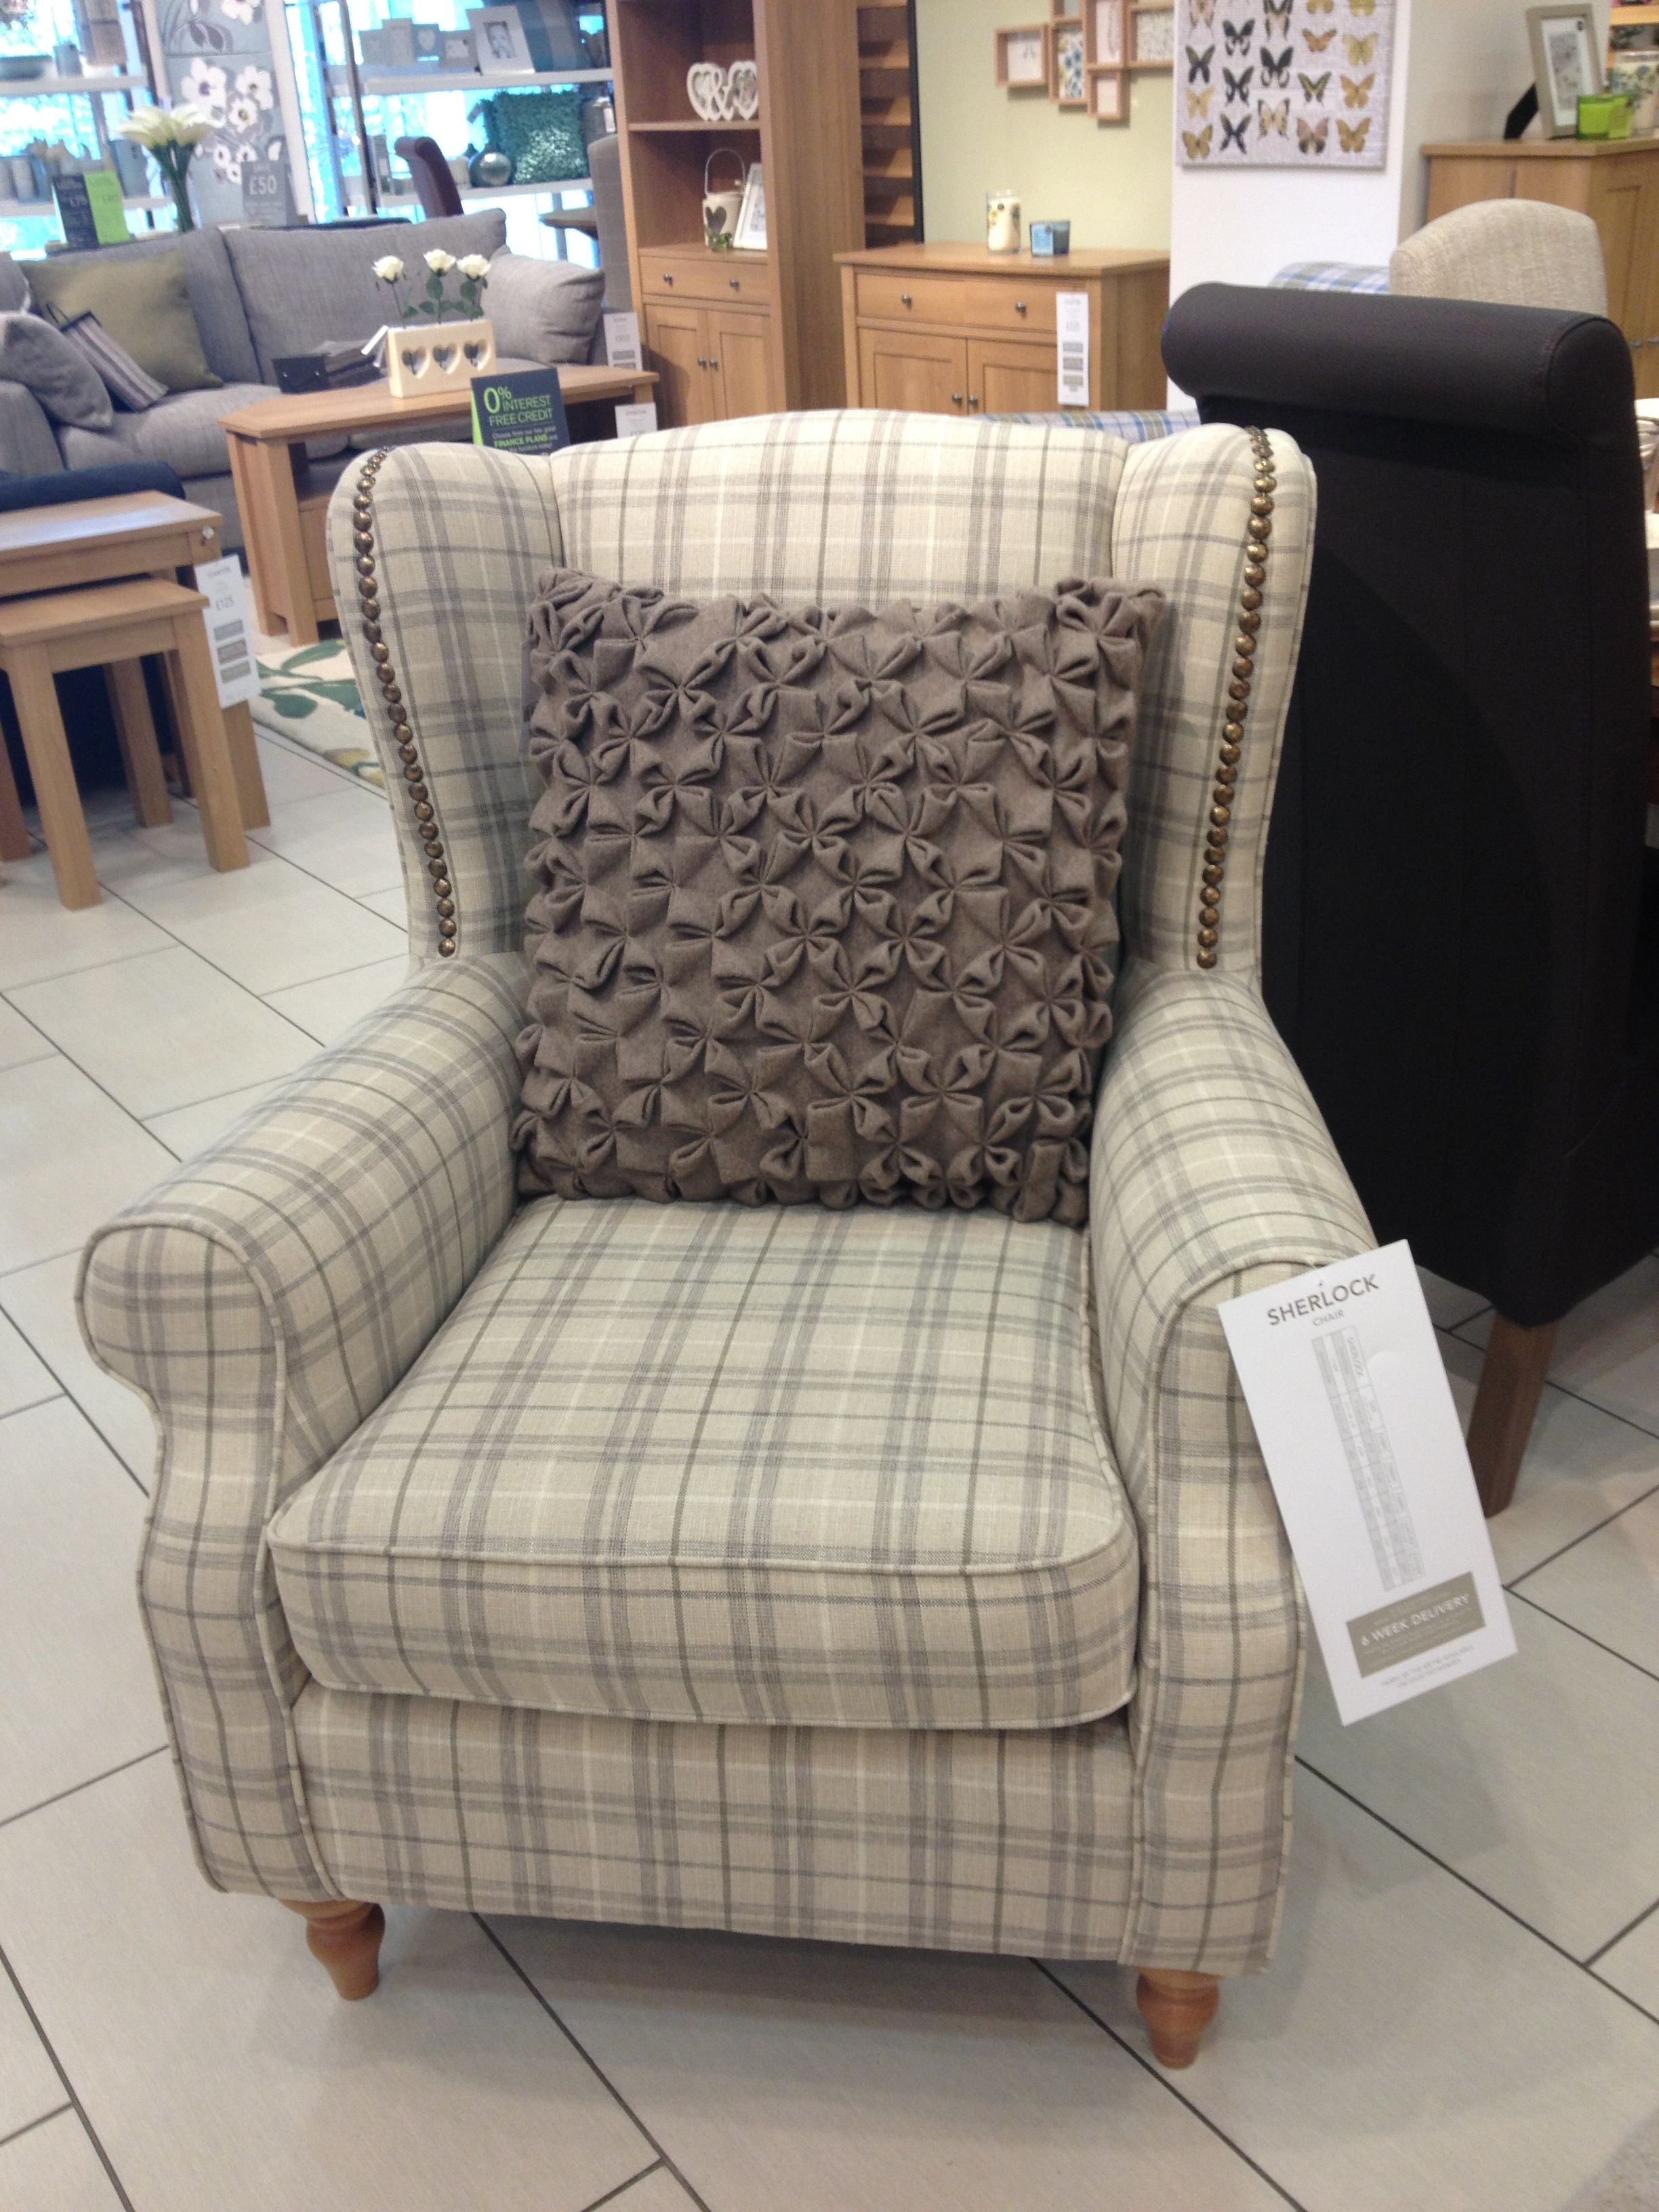 Gorgeous Sherlock Chair From Next Living Room Bench World